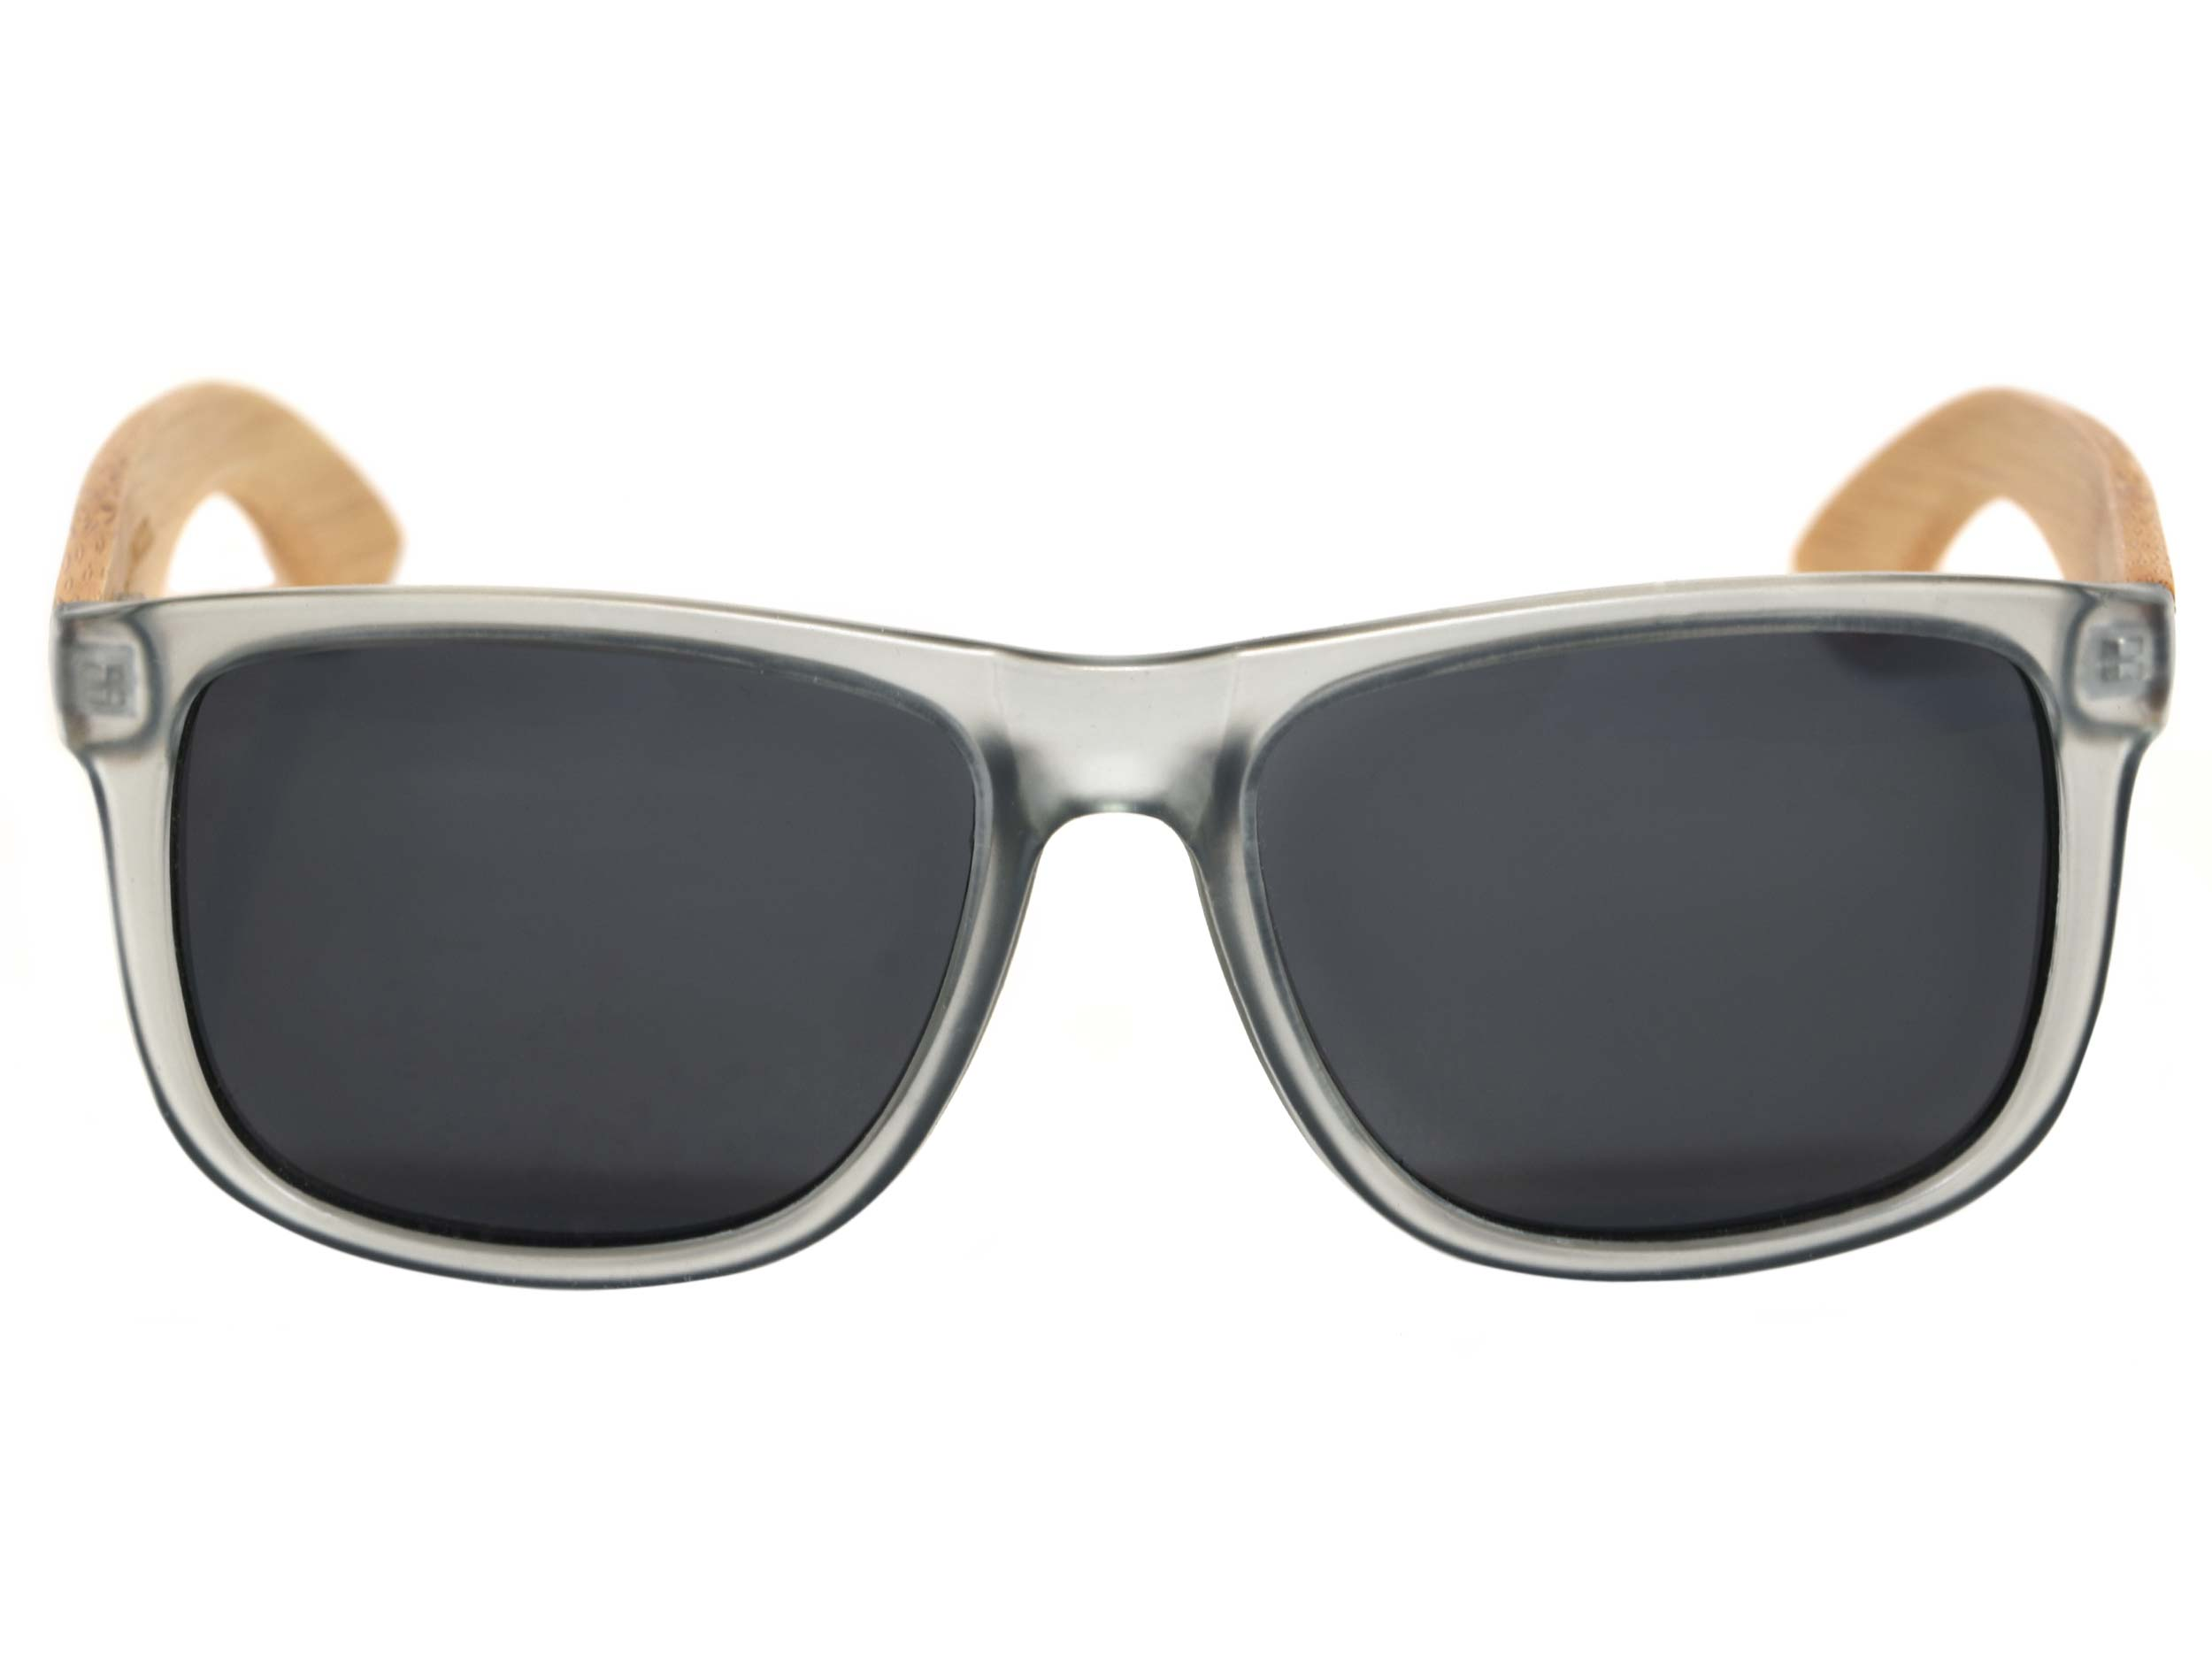 Square bamboo wood sunglasses